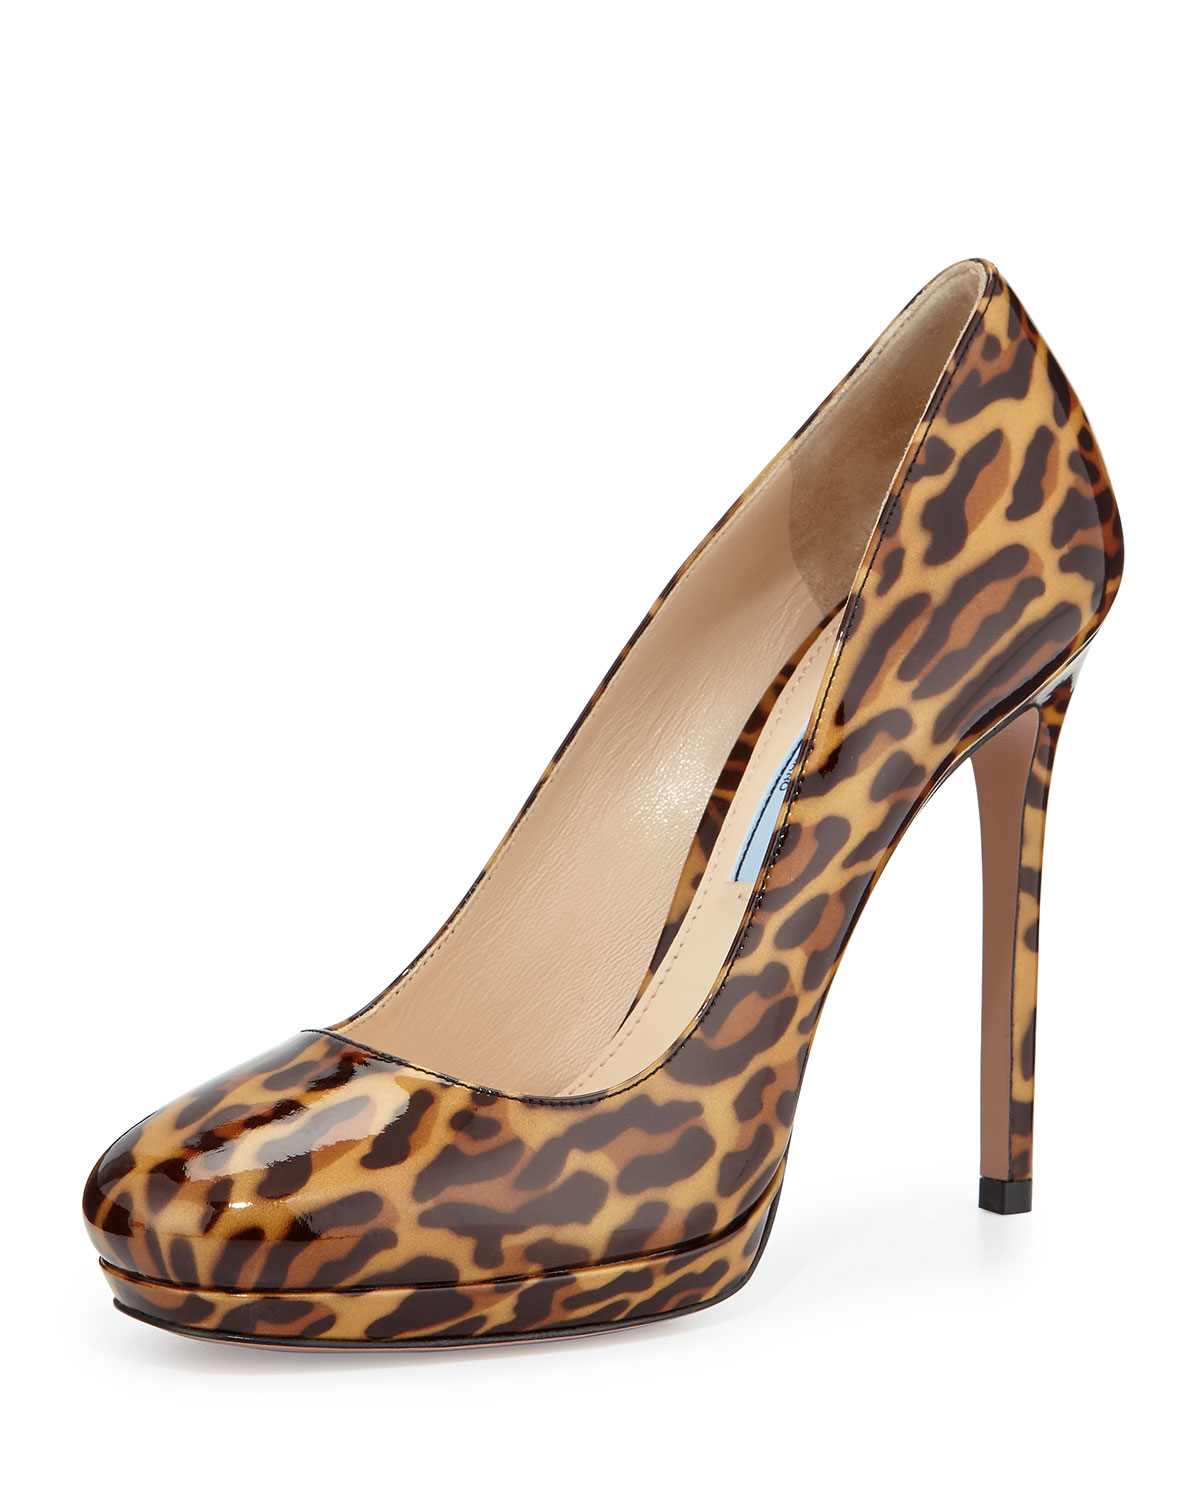 Leopard Patent Leather Platform Pump, Leopard